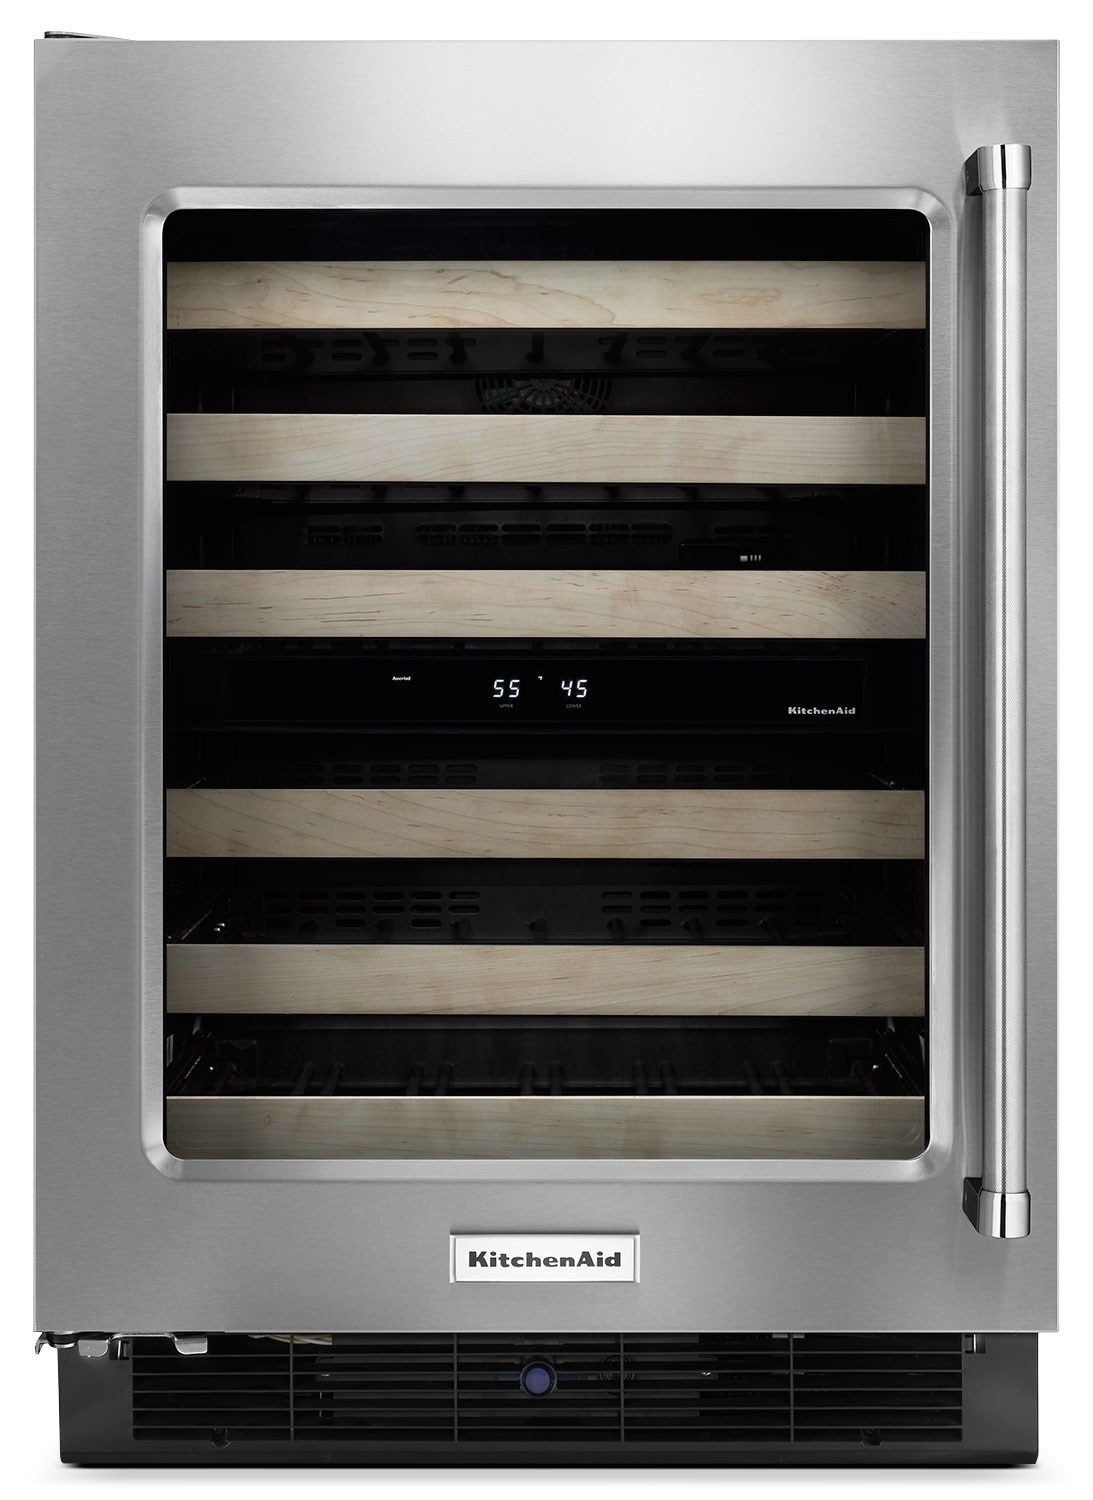 Refrigerators and Freezers - KitchenAid Wine Cooler KUWL204ESB